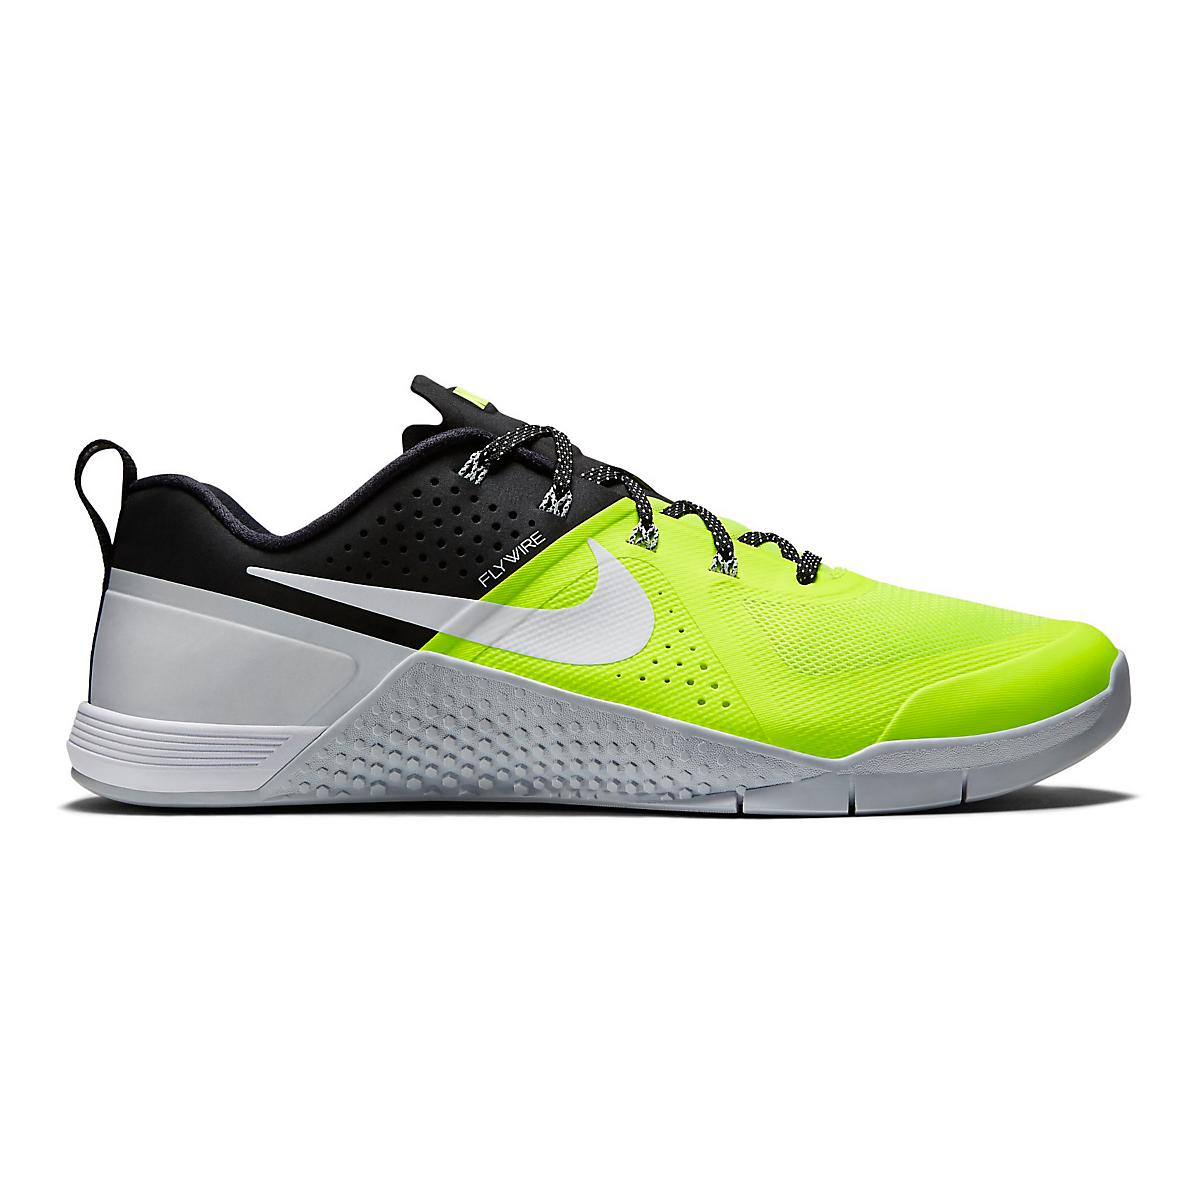 mens nike metcon 1 cross training shoe at road runner sports. Black Bedroom Furniture Sets. Home Design Ideas